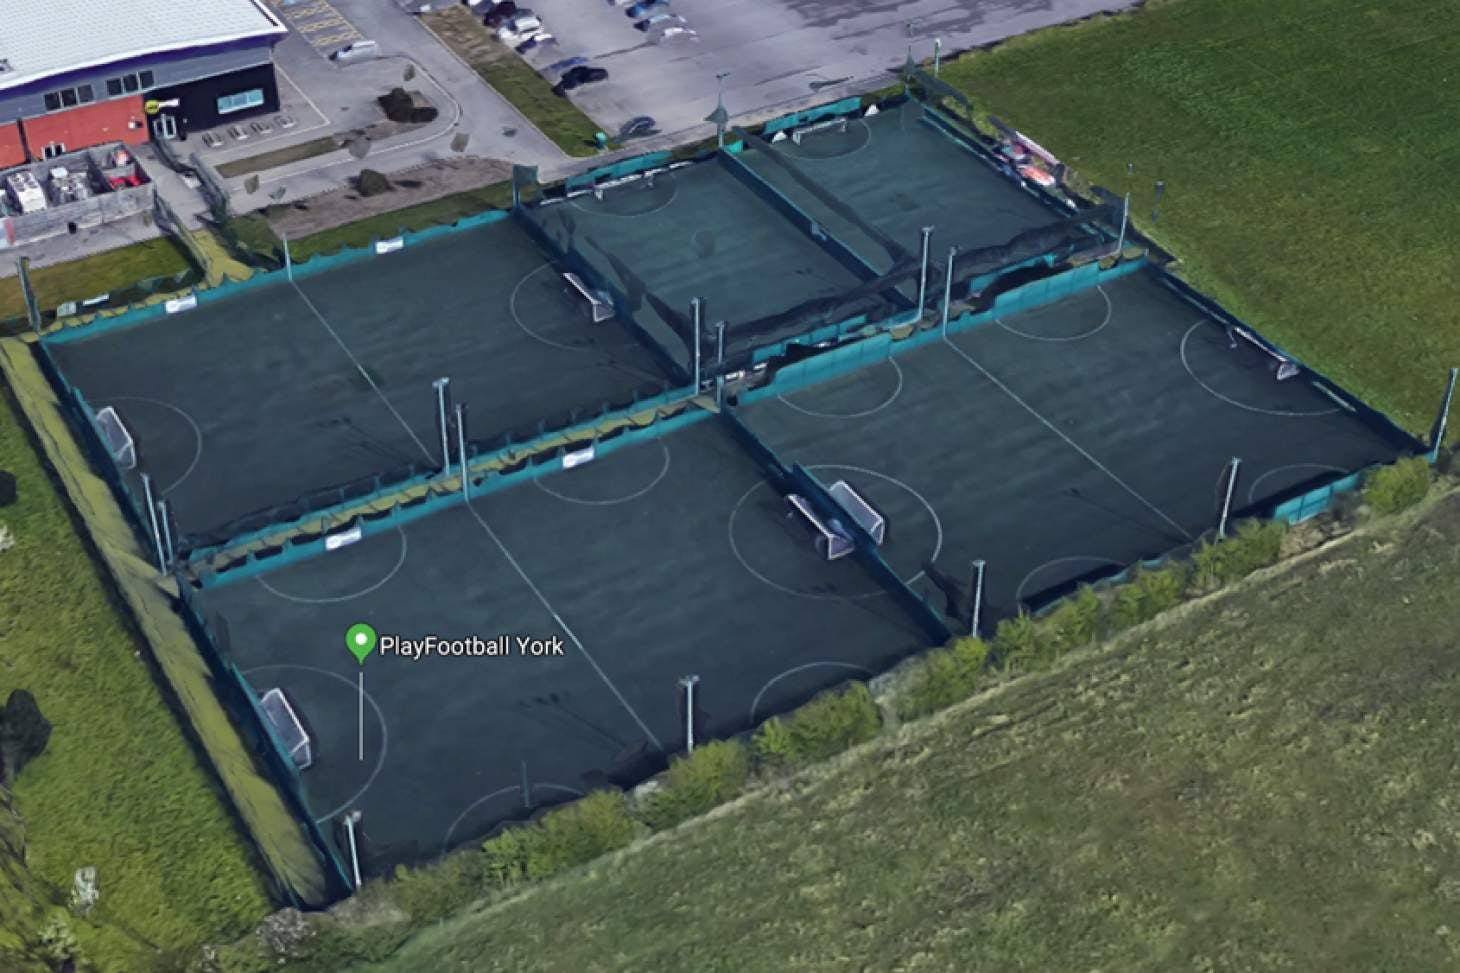 PlayFootball York 5 a side | 3G Astroturf football pitch